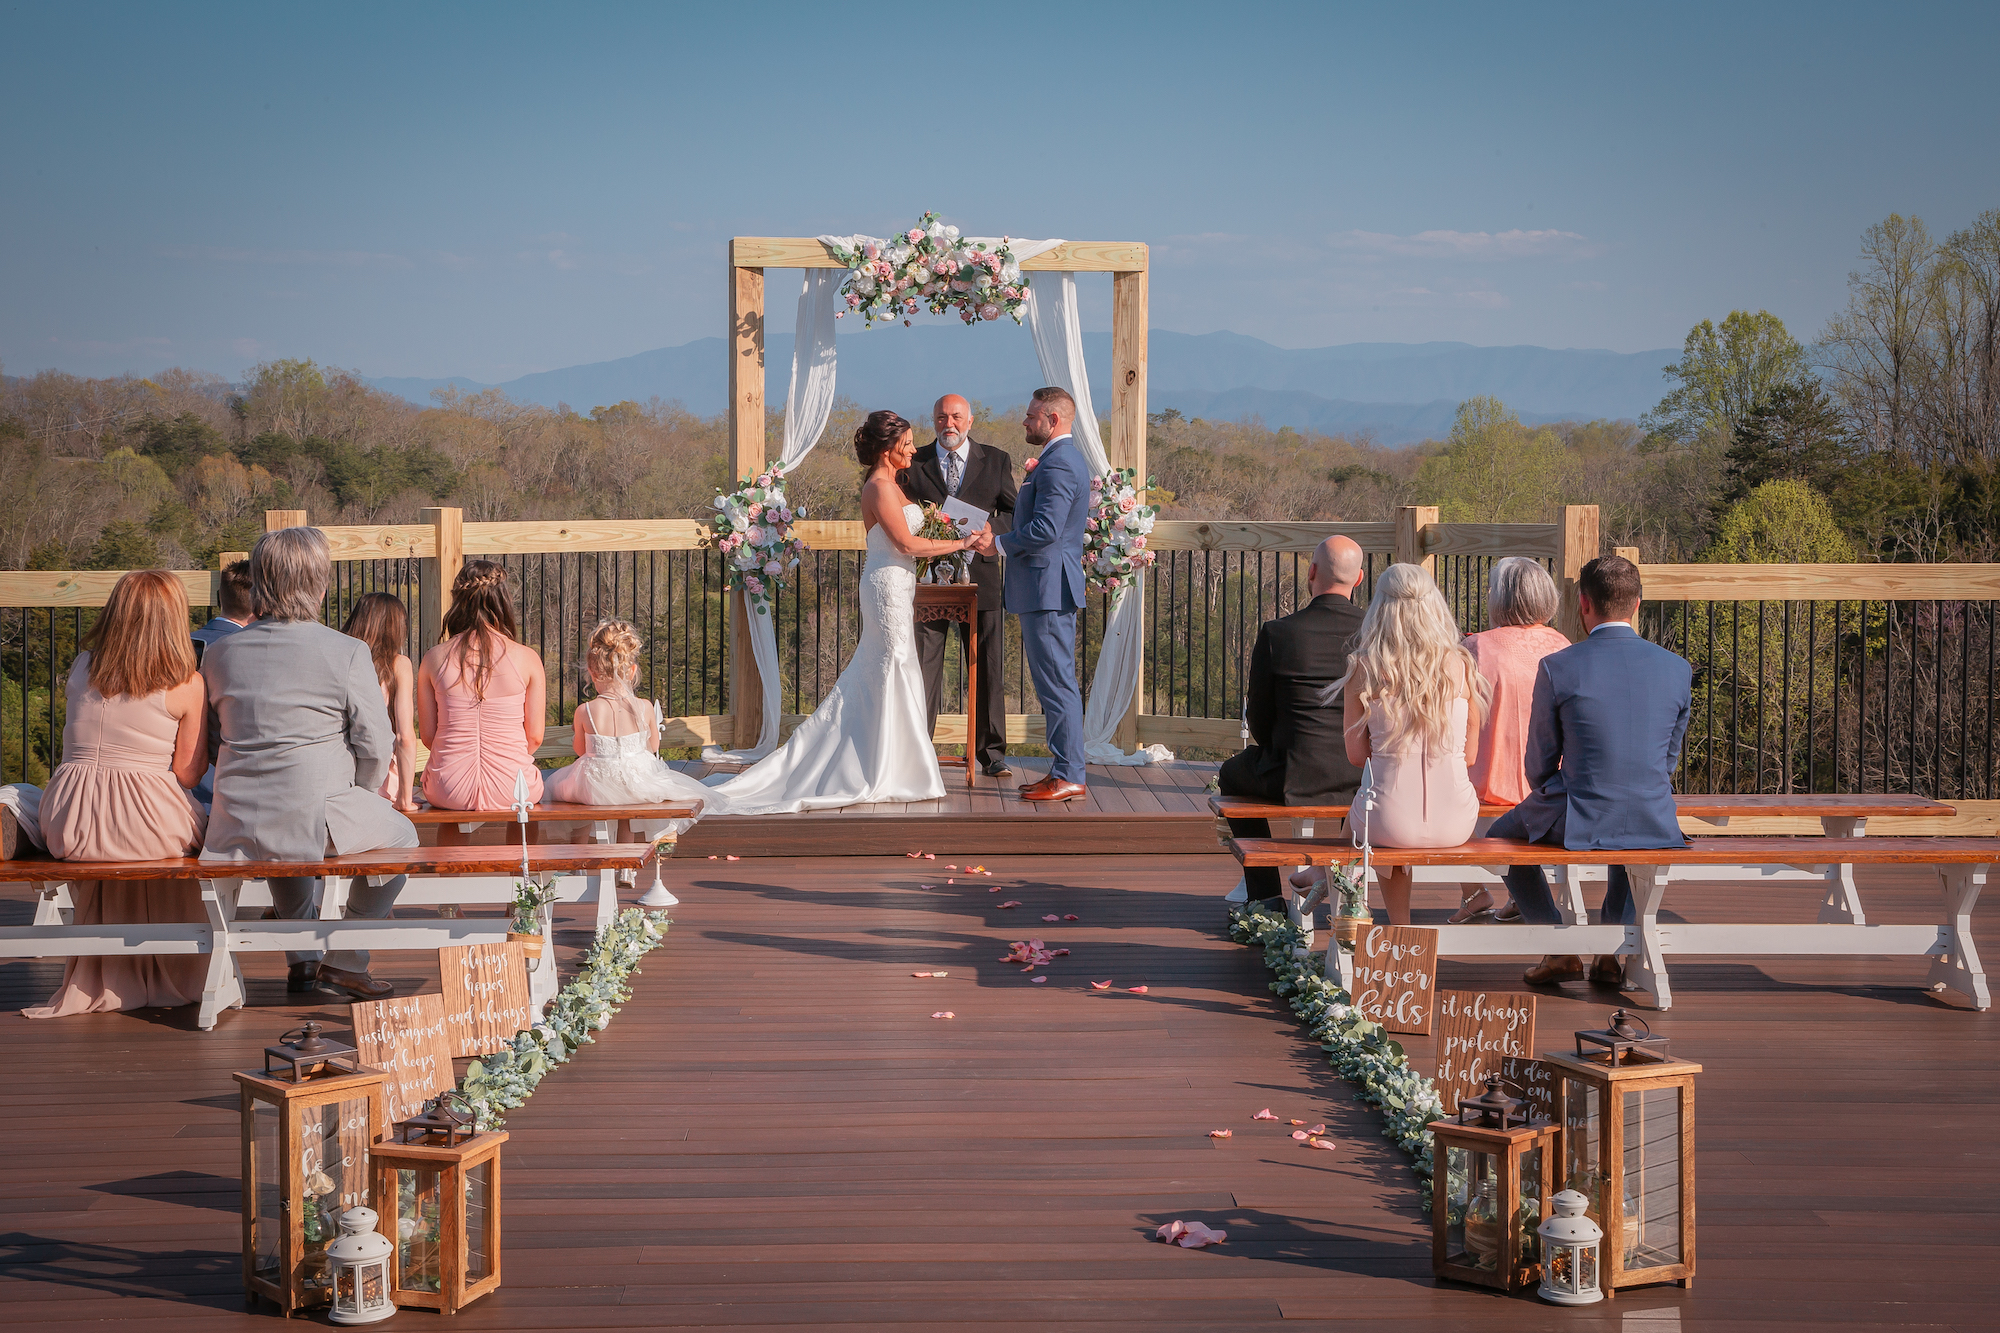 a couple getting married on the main porch where people get married at flower mountain wedding venues in gatlinburg tennessee